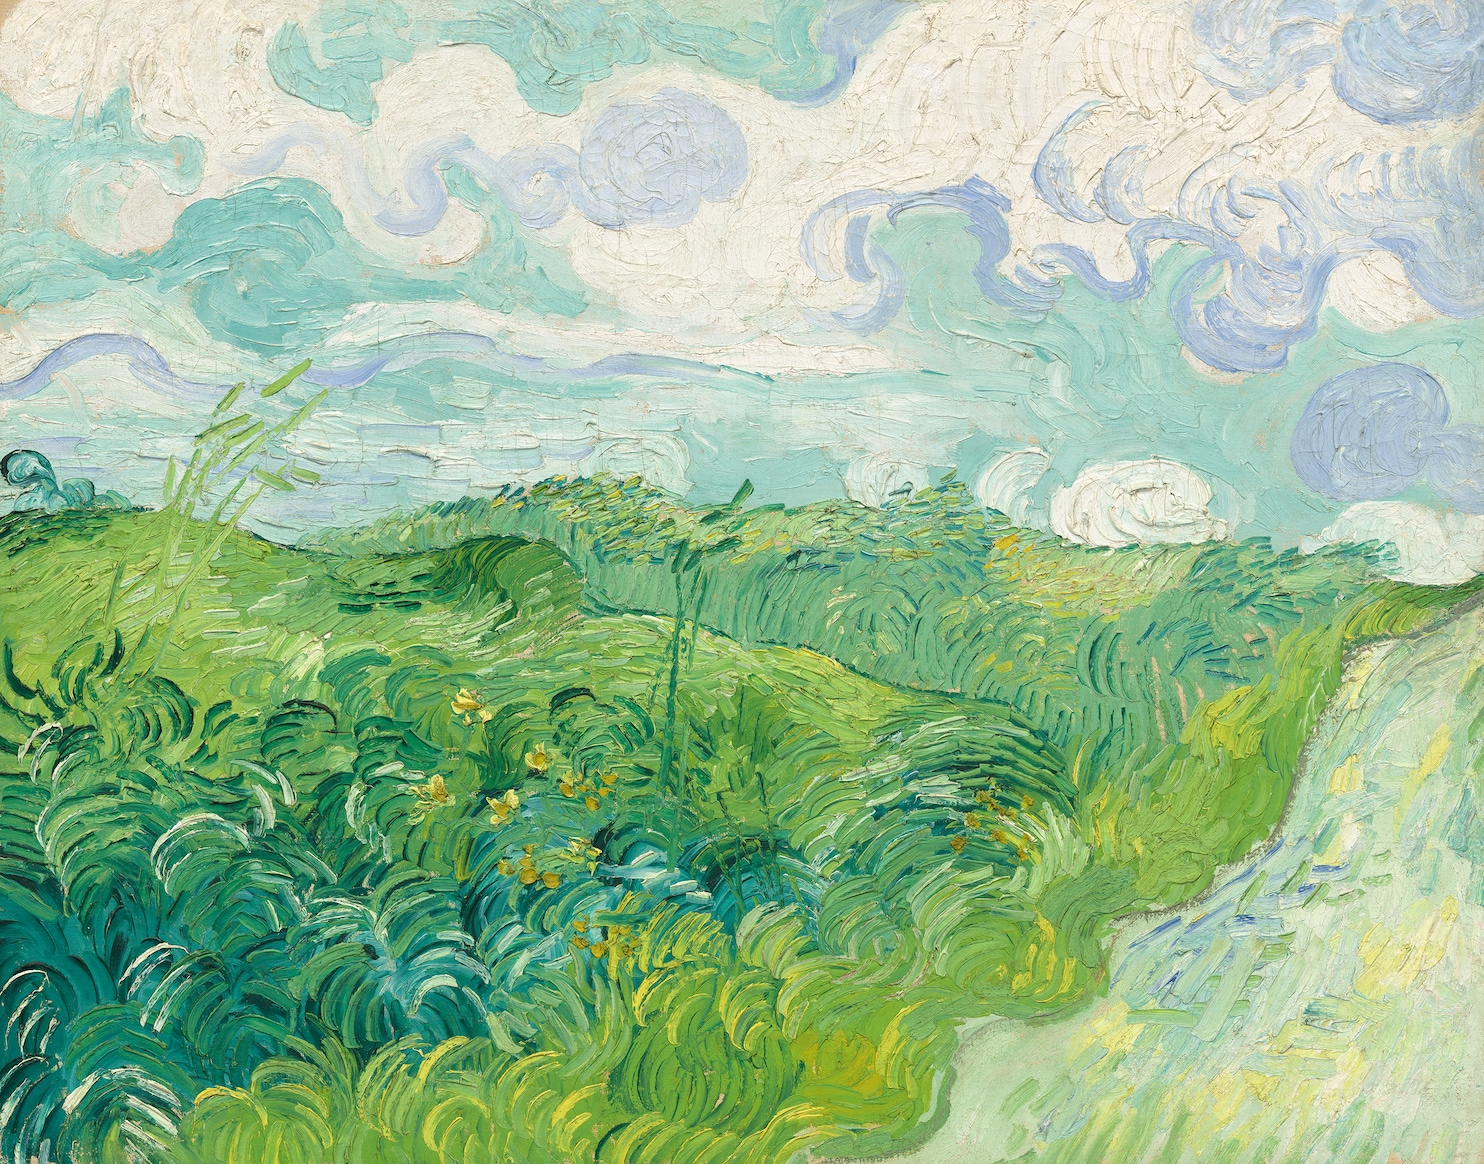 Green Wheat Fields by Van Gogh